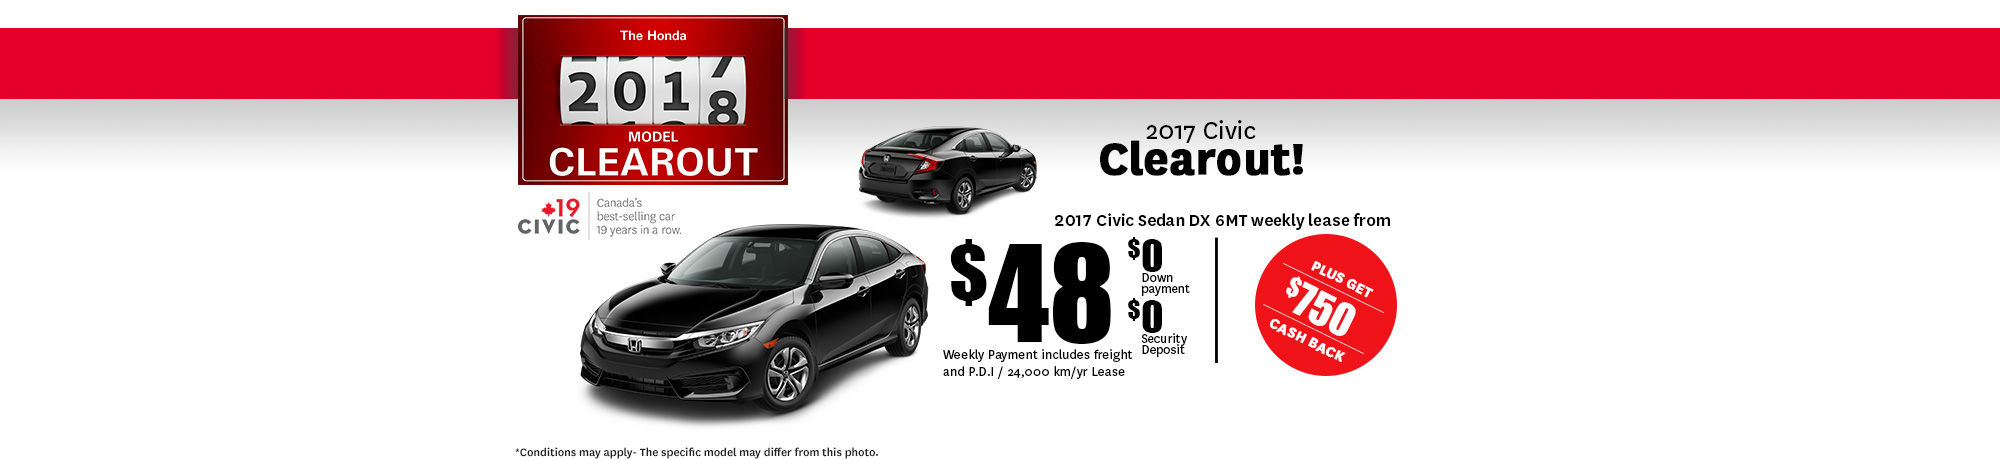 2017 Honda Clearout Civic - October